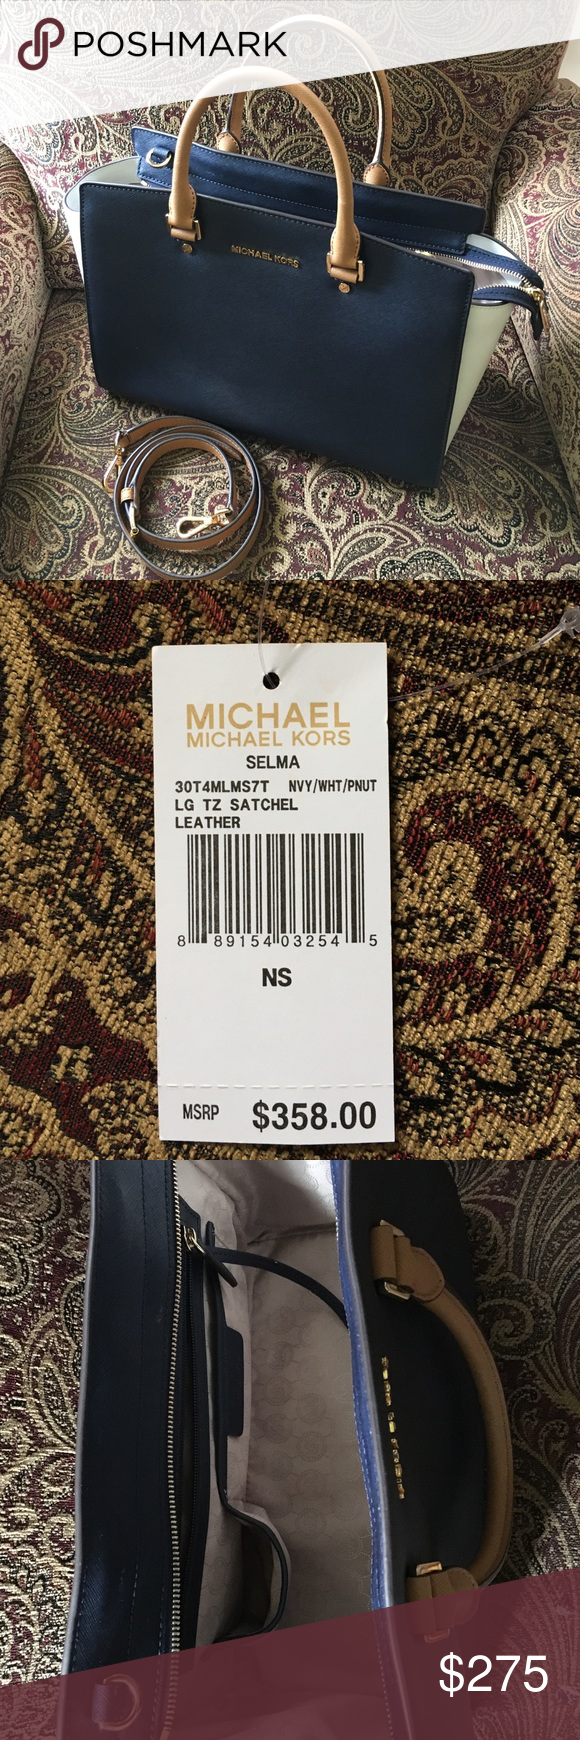 """Michael Kors """"Selma"""" Michael Kors Large Navy/White """"Selma"""" . Excellent condition, used once last year. Dust bag and detachable strap included Michael Kors Bags Satchels"""